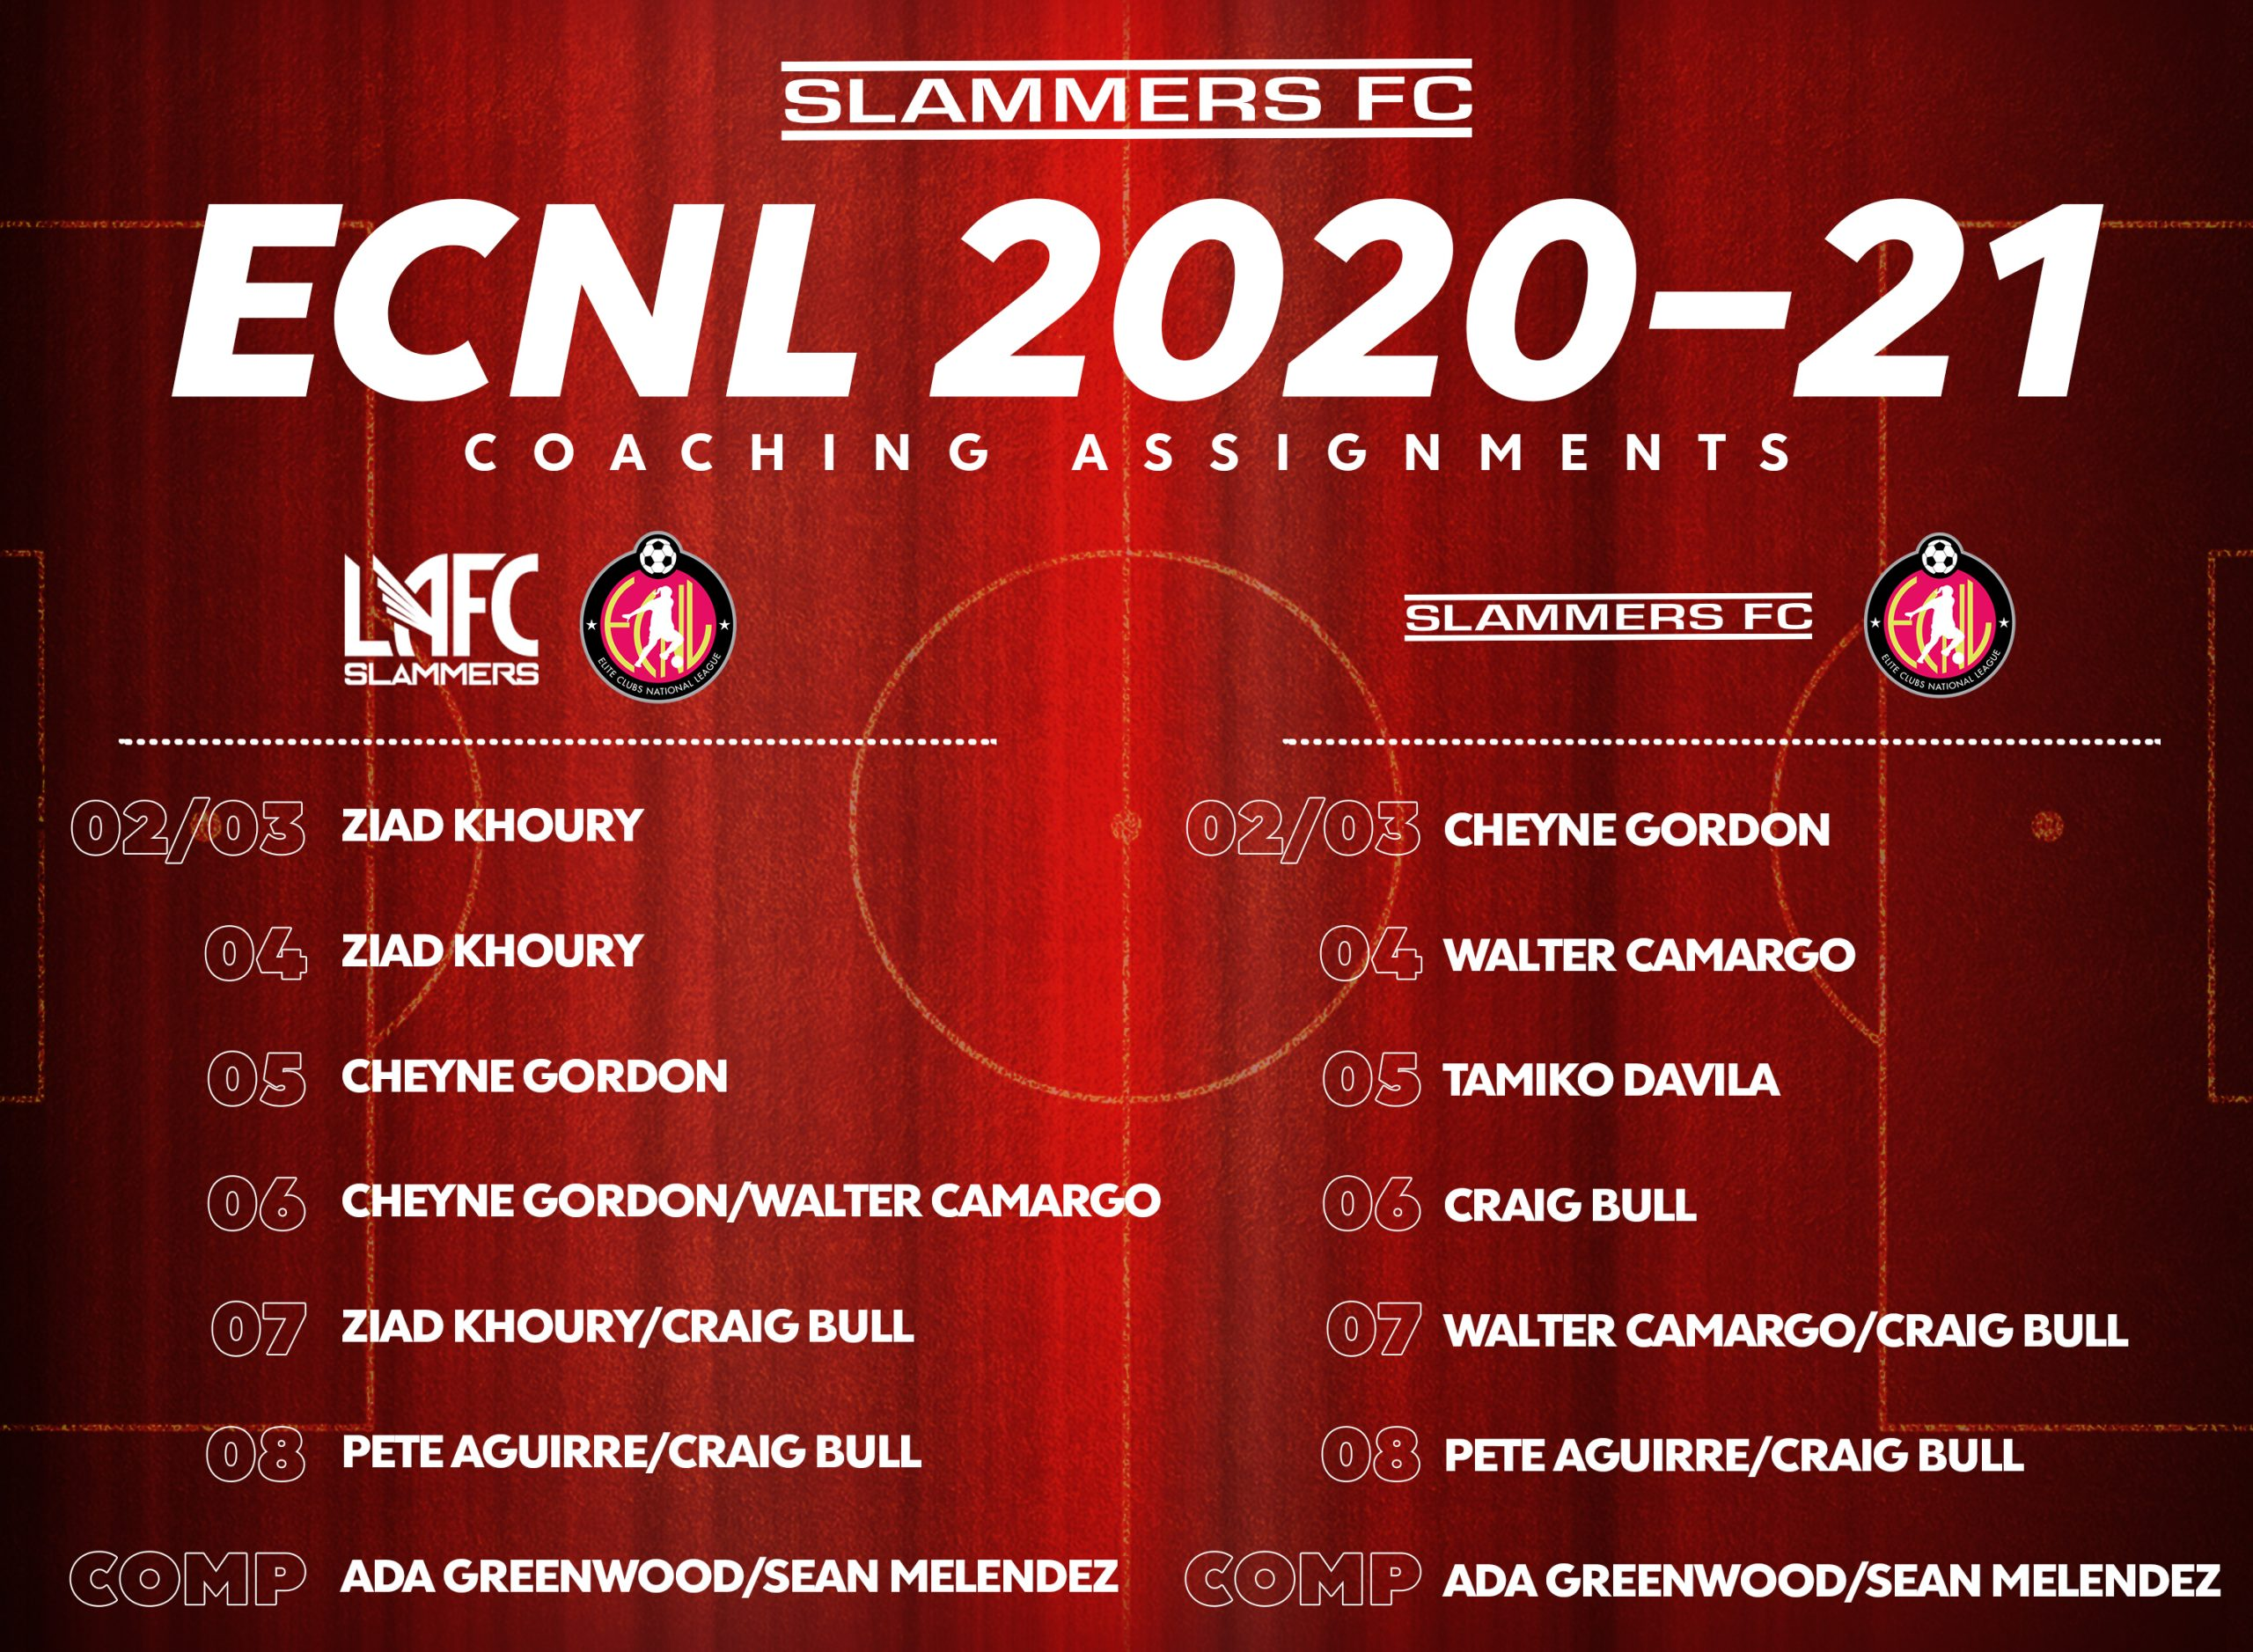 List of Slammers FC ECNL 20-21 Coaching Assigments